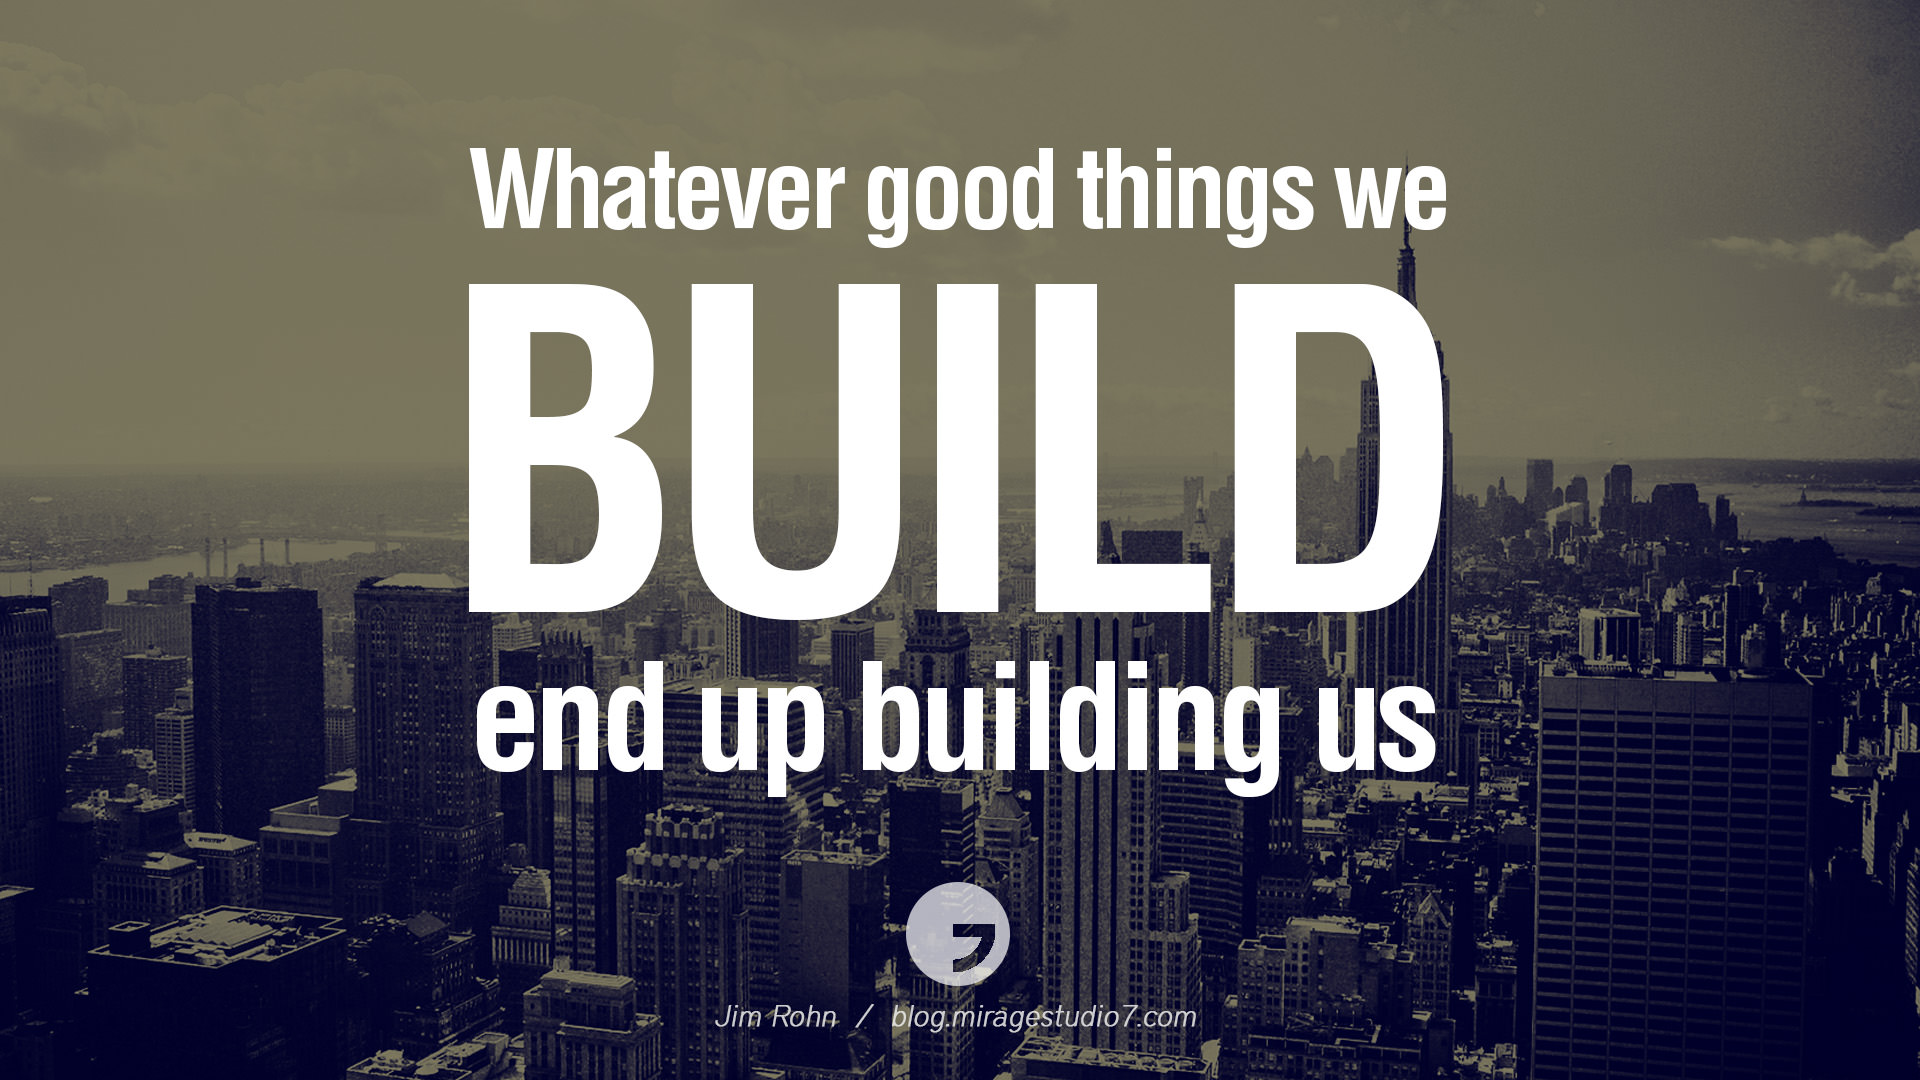 quotes architecture architect building things build famous whatever architects end rohn jim interior sayings inspirational architectural construction buildings landscape short